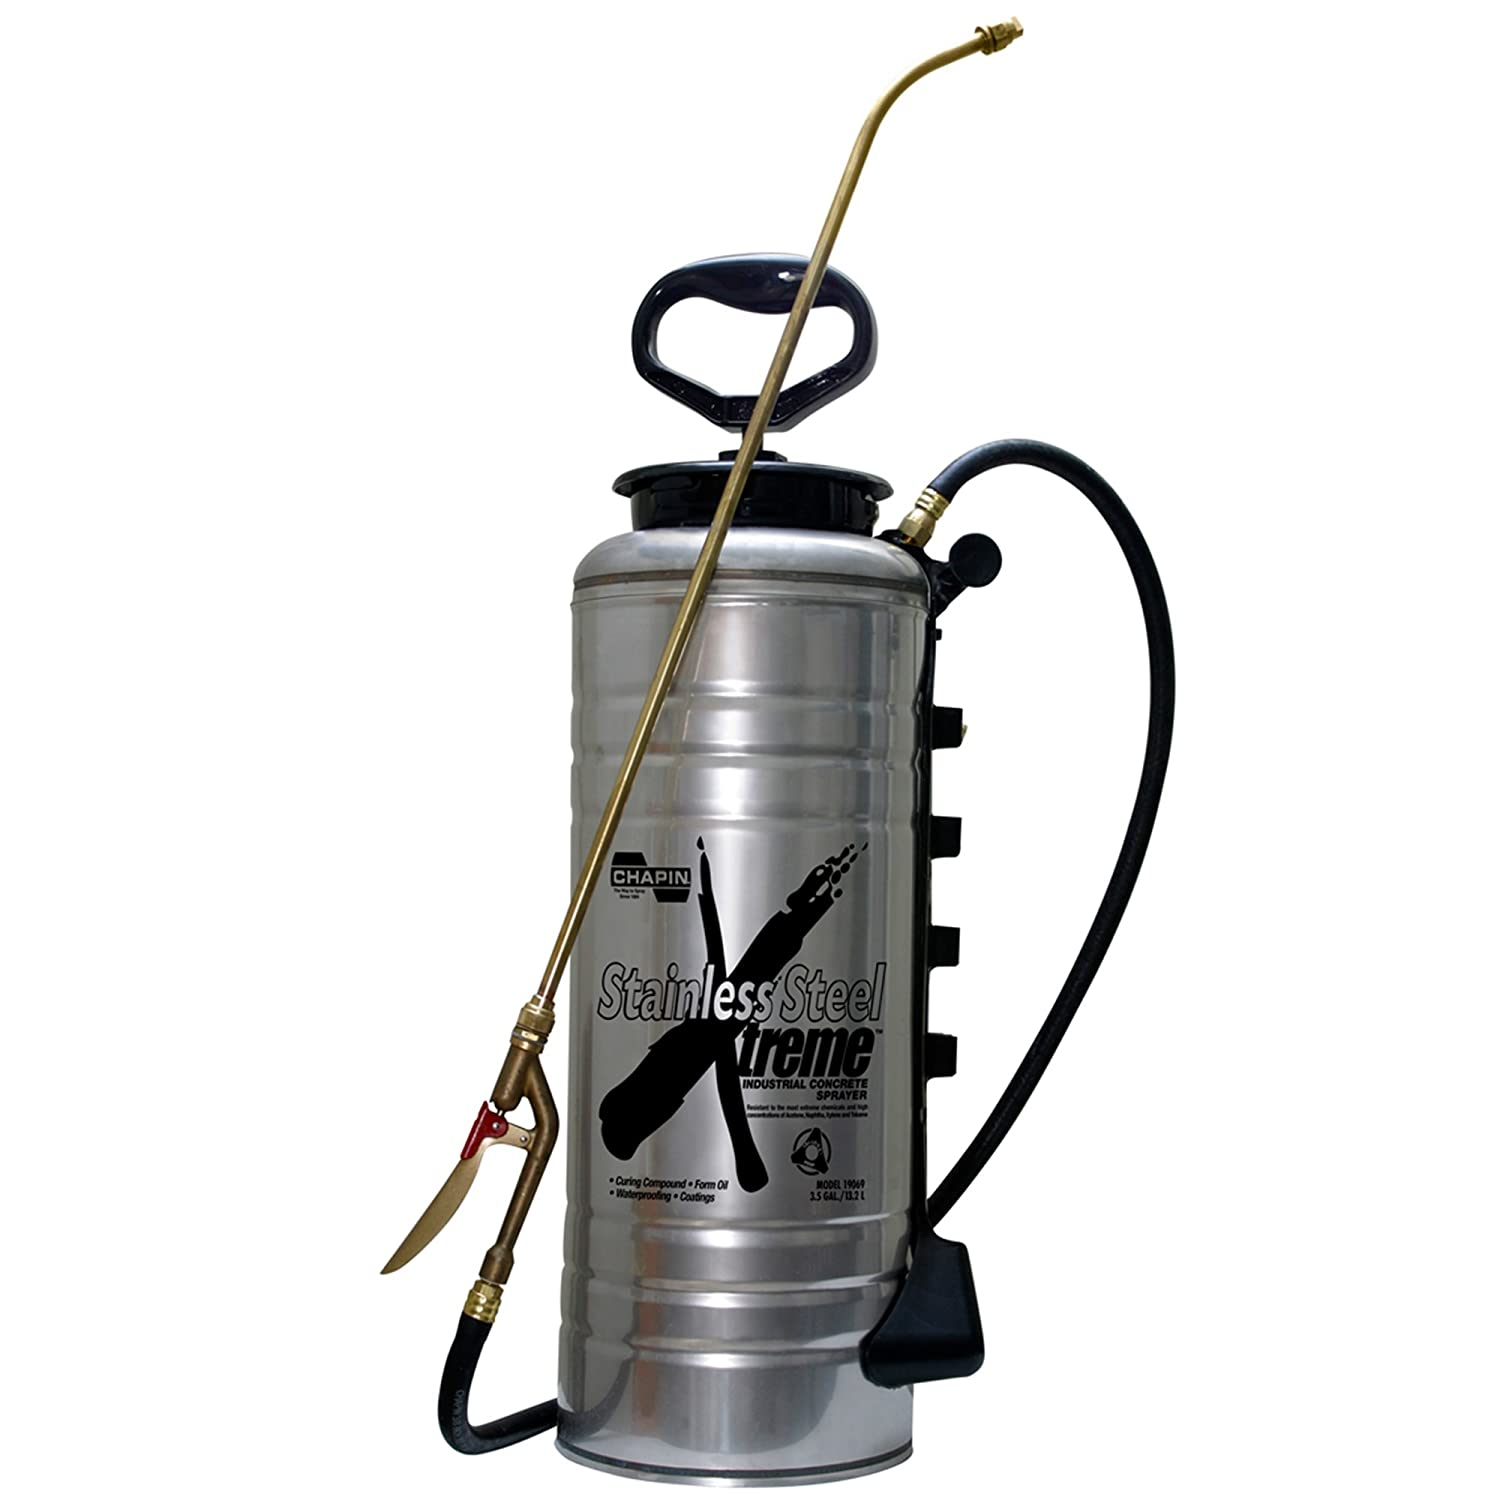 Chapin 19069 3.5-Gallon Xtreme Stainless Steel Concrete Open Head Sprayer for Professional Concrete Applications 1 Sprayer Package